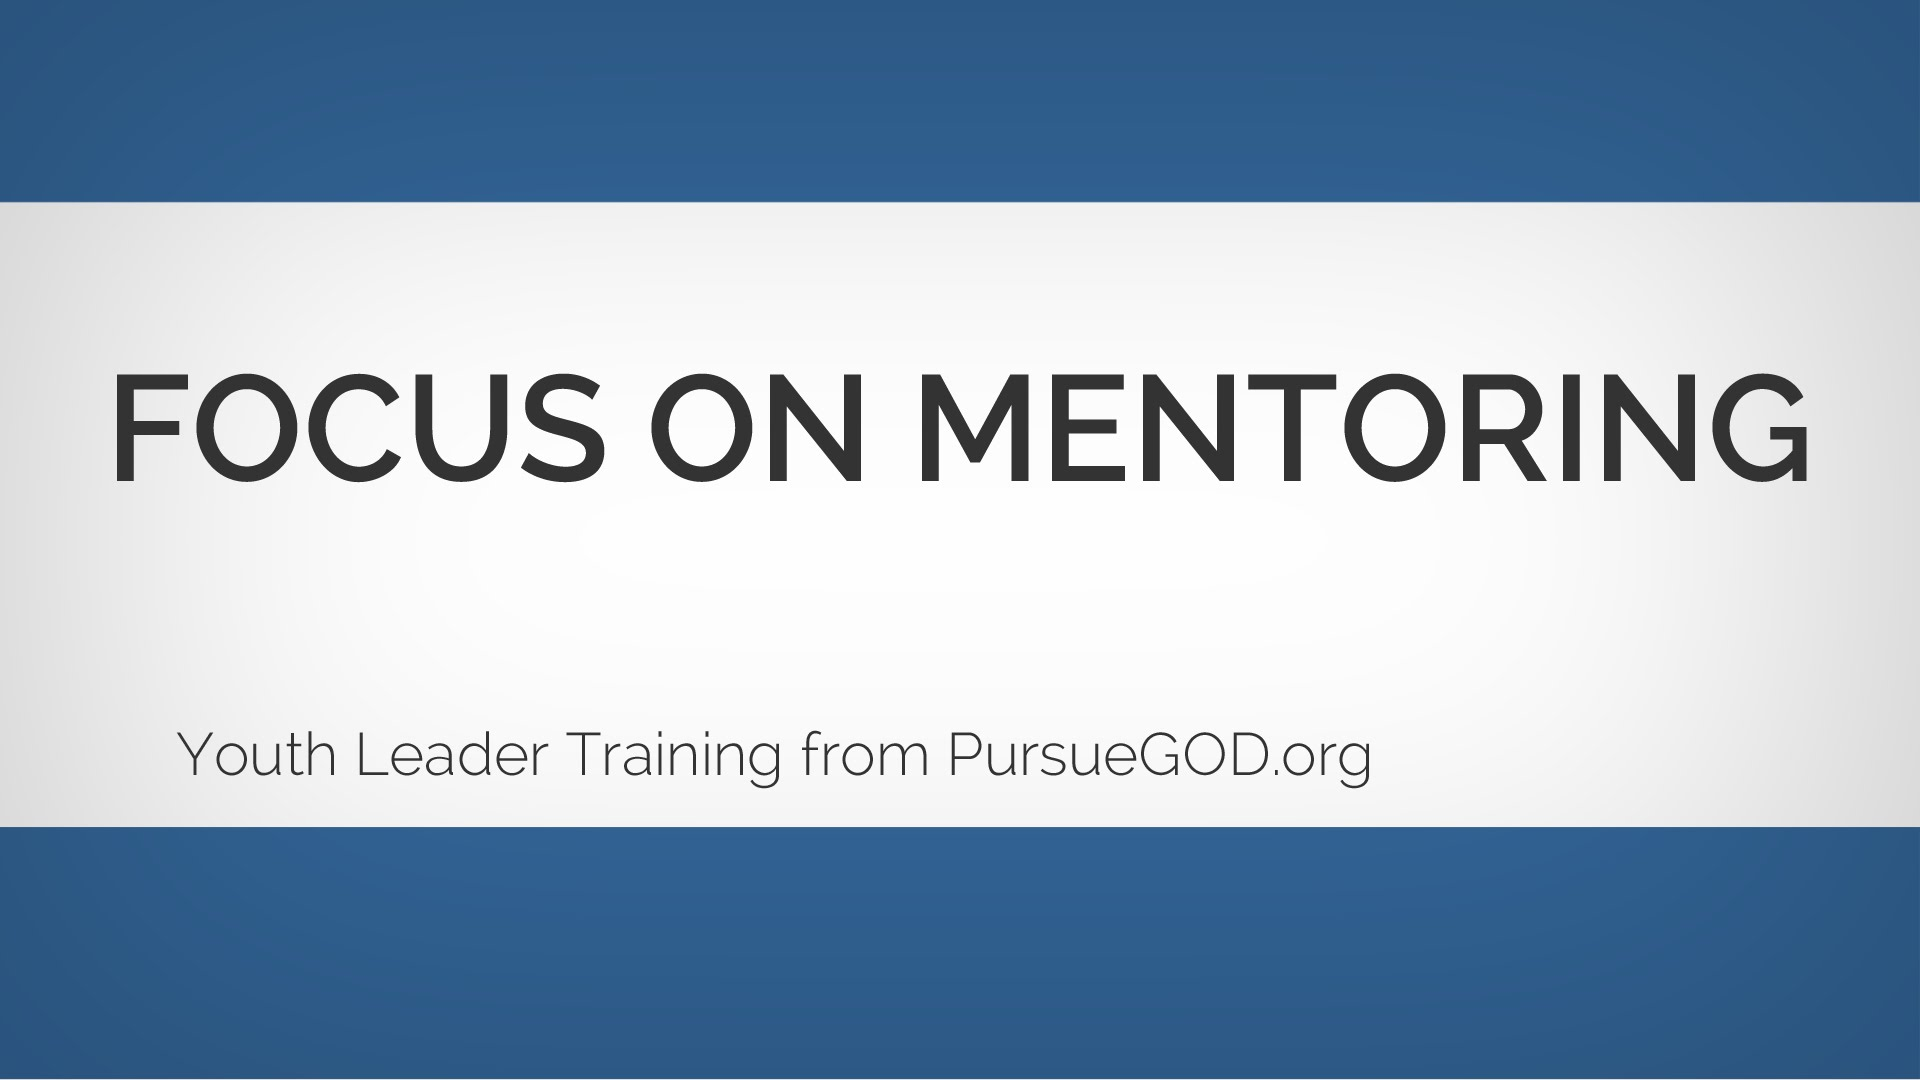 Youth Leader Training: Focus on Mentoring